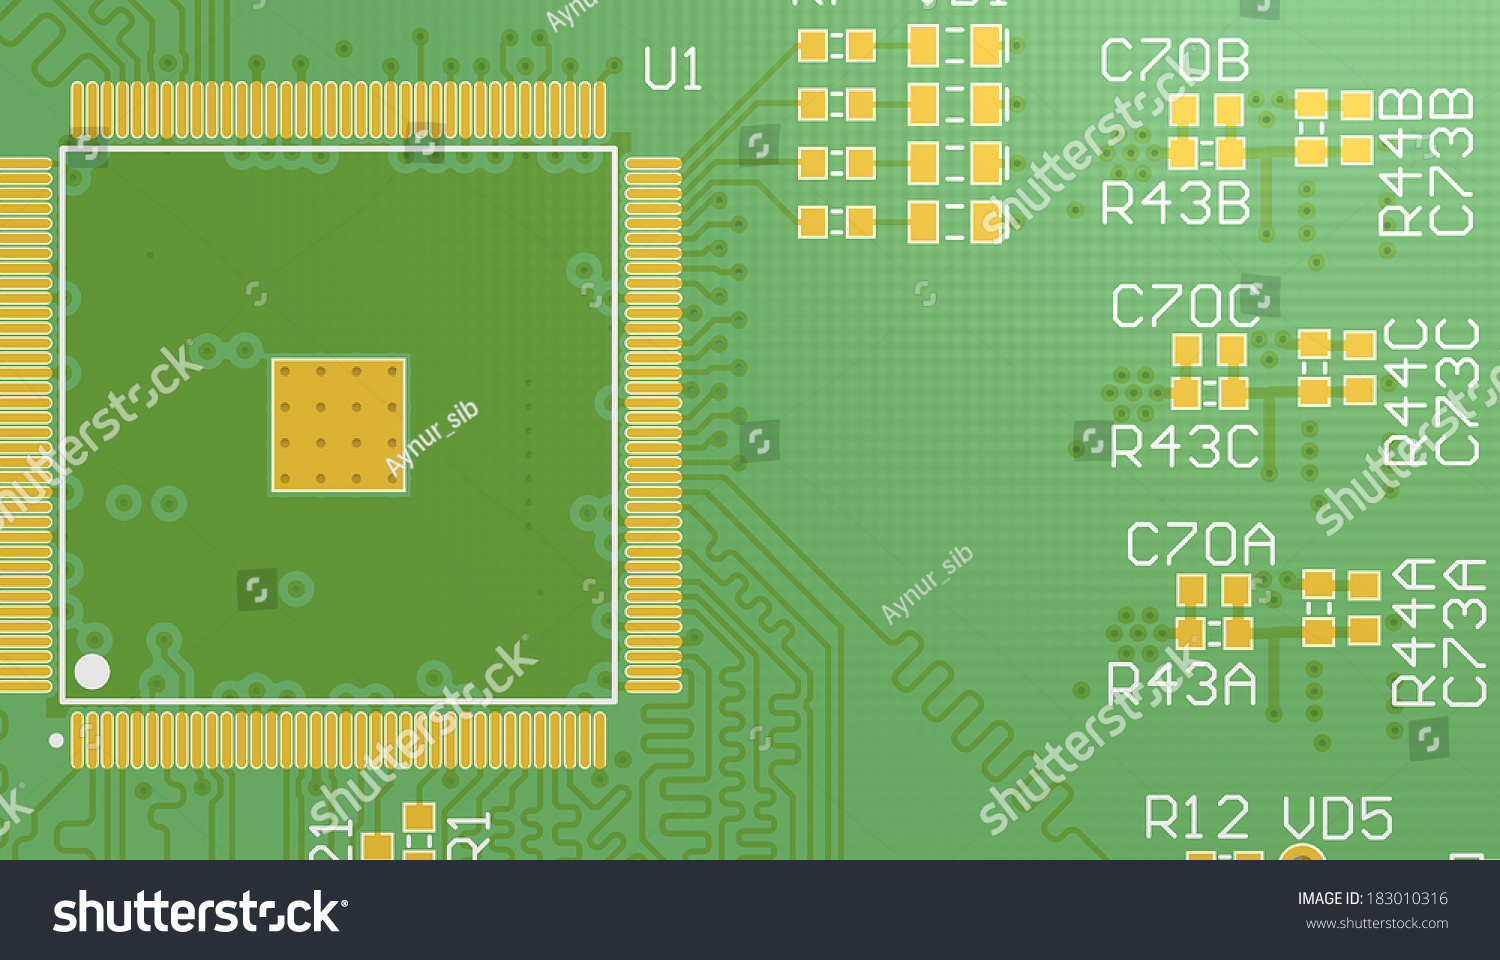 Top View Pcb 3 D Circuit Cad Stock Illustration 183010316 Shutterstock Printed Wiring Board Manufacturers 3d Designed For Computer Device Manufacturing Printing With Silkscreen